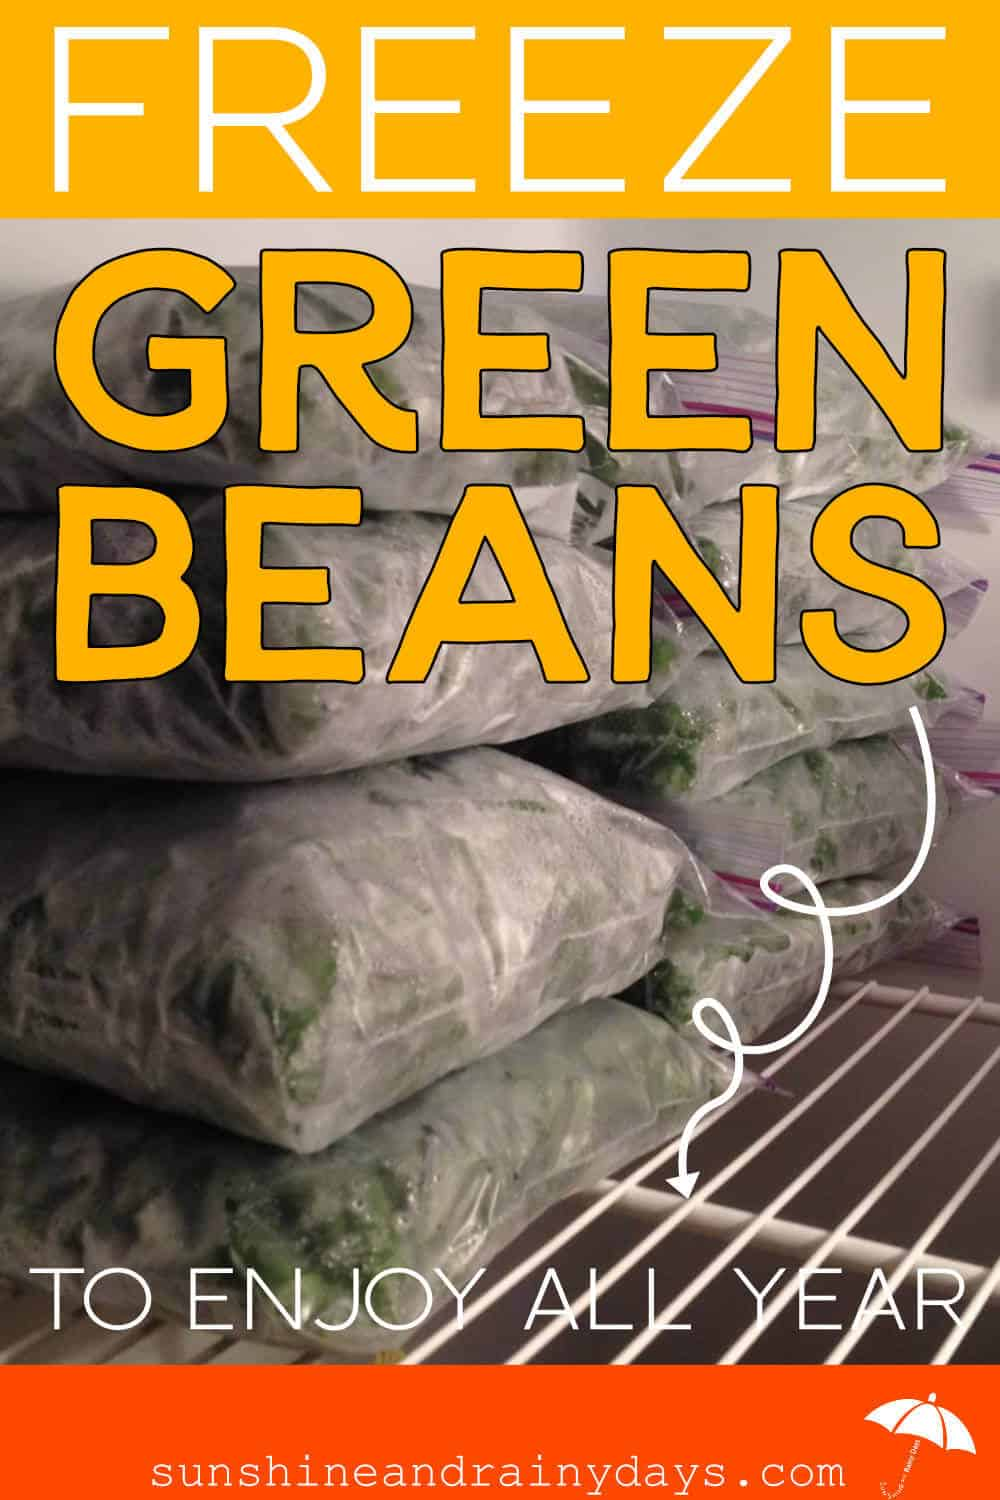 How To Freeze Green Beans To Enjoy All Year